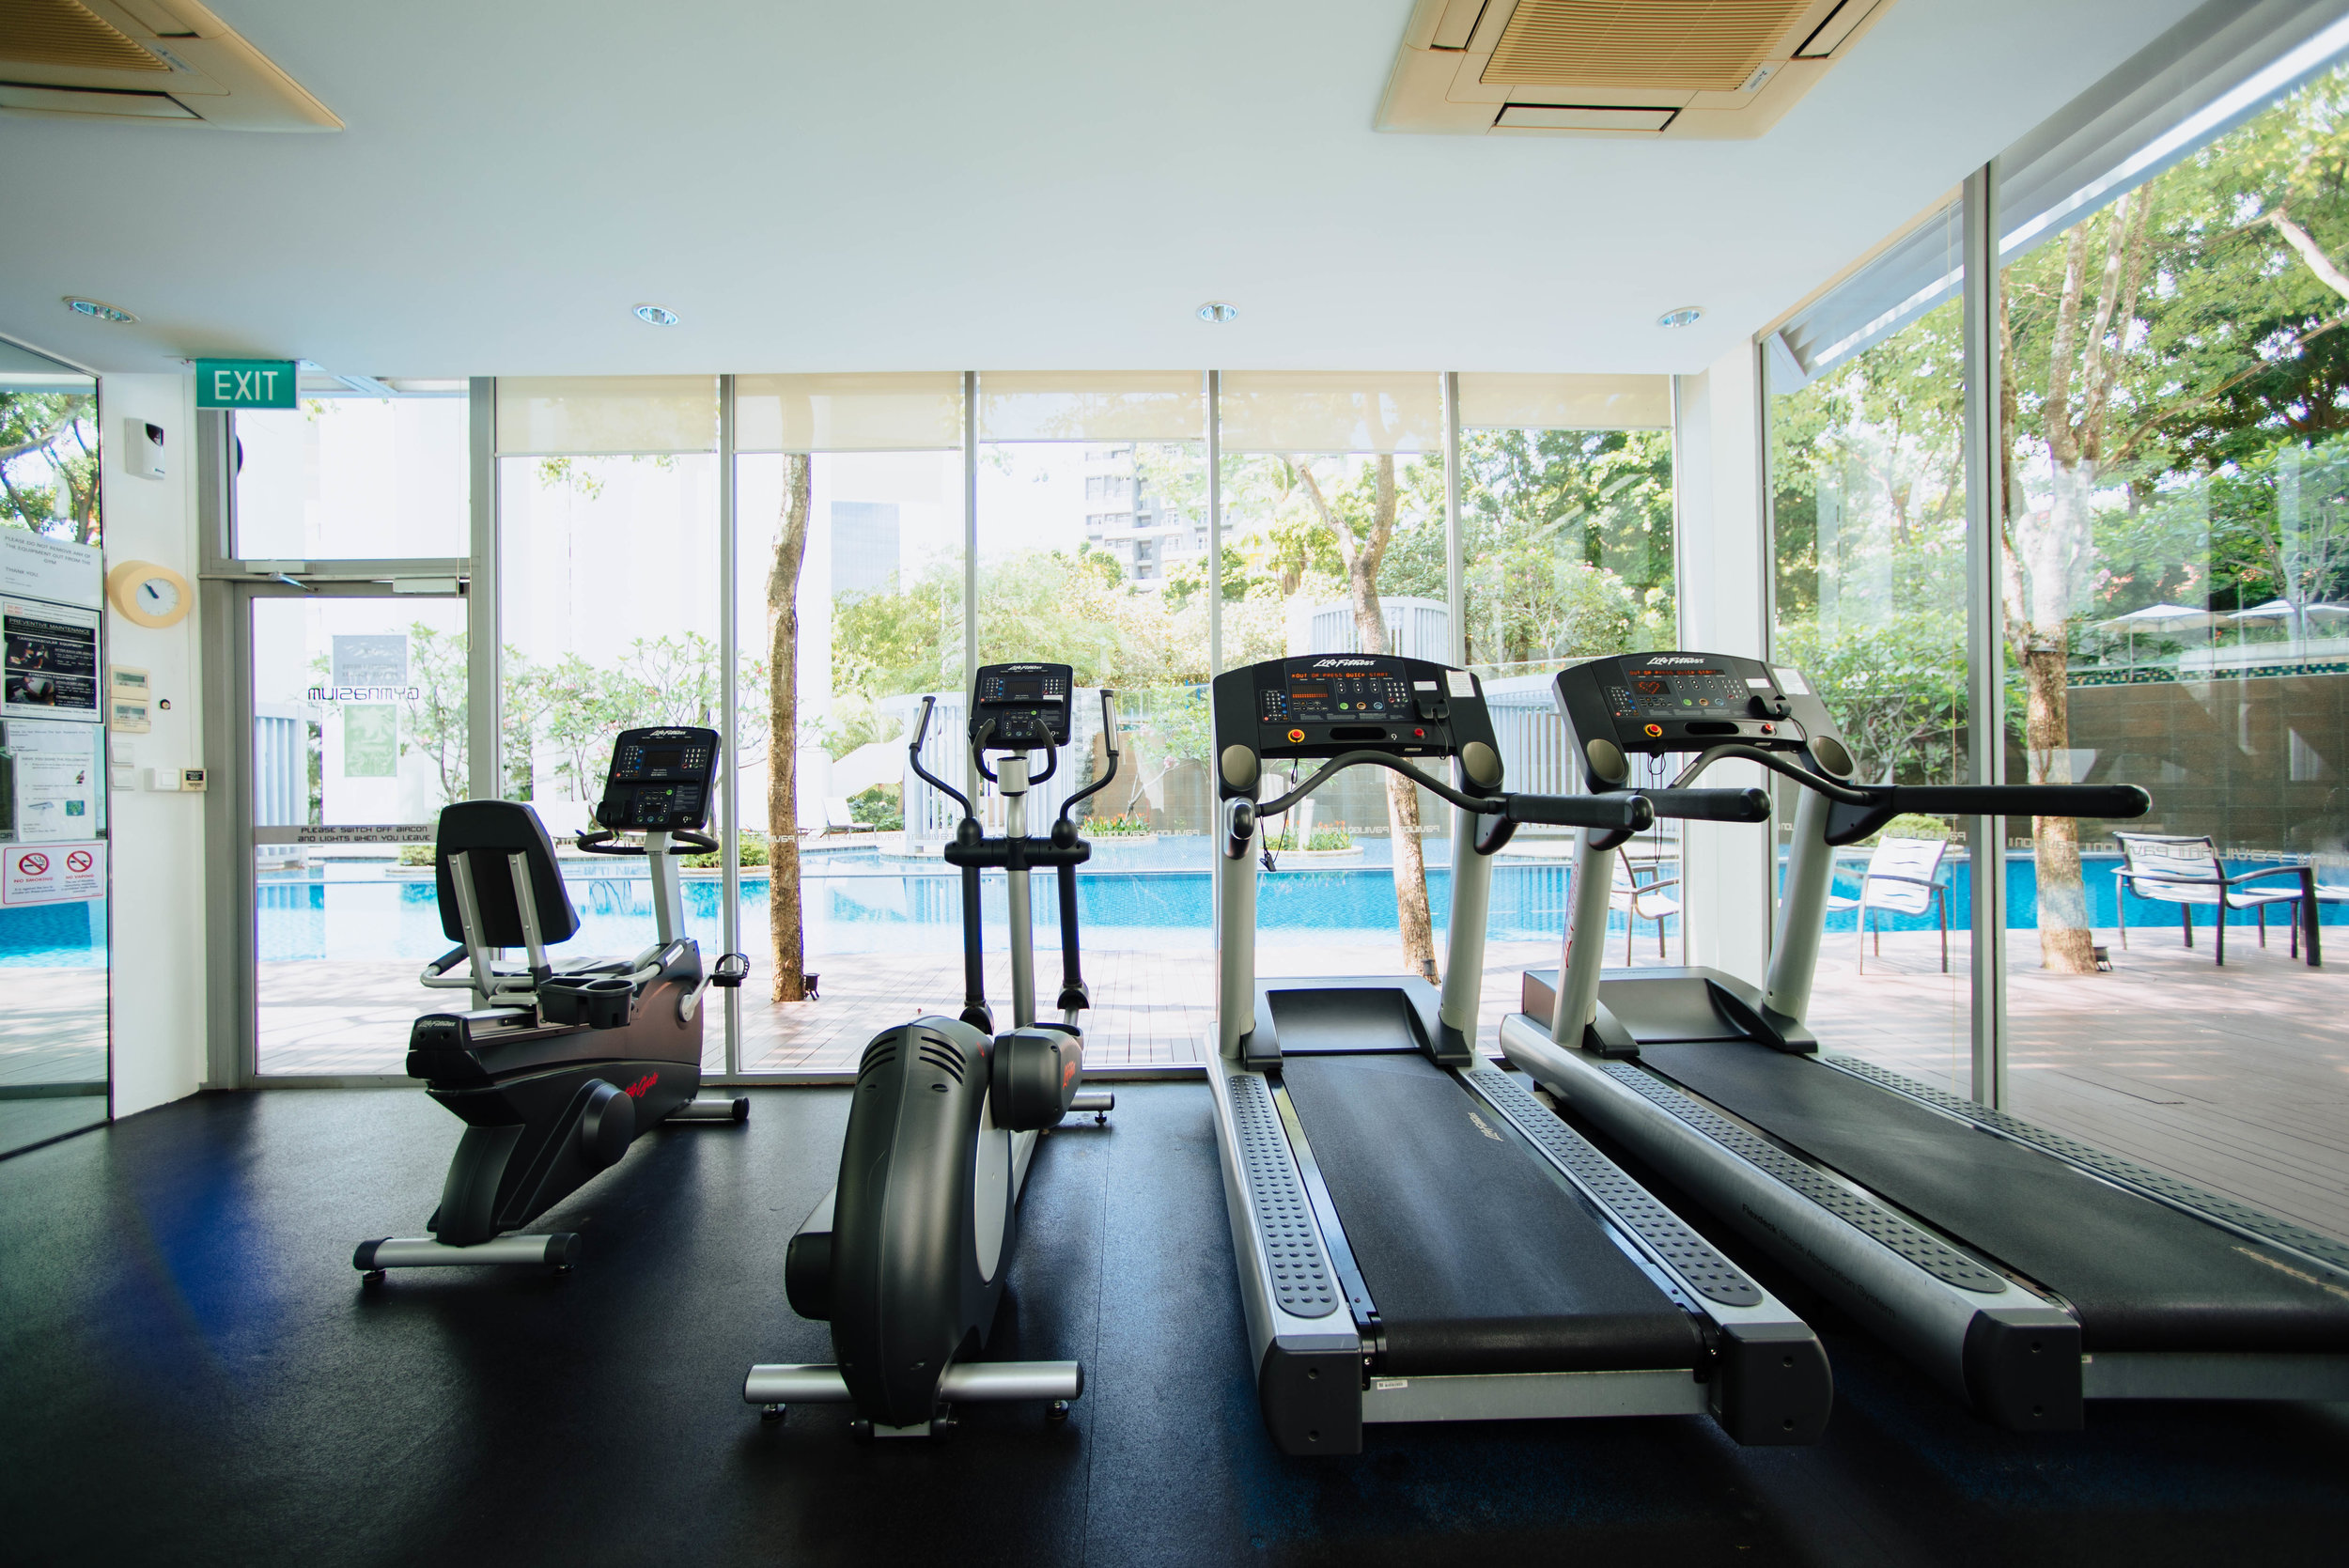 Cardio and Dieting -